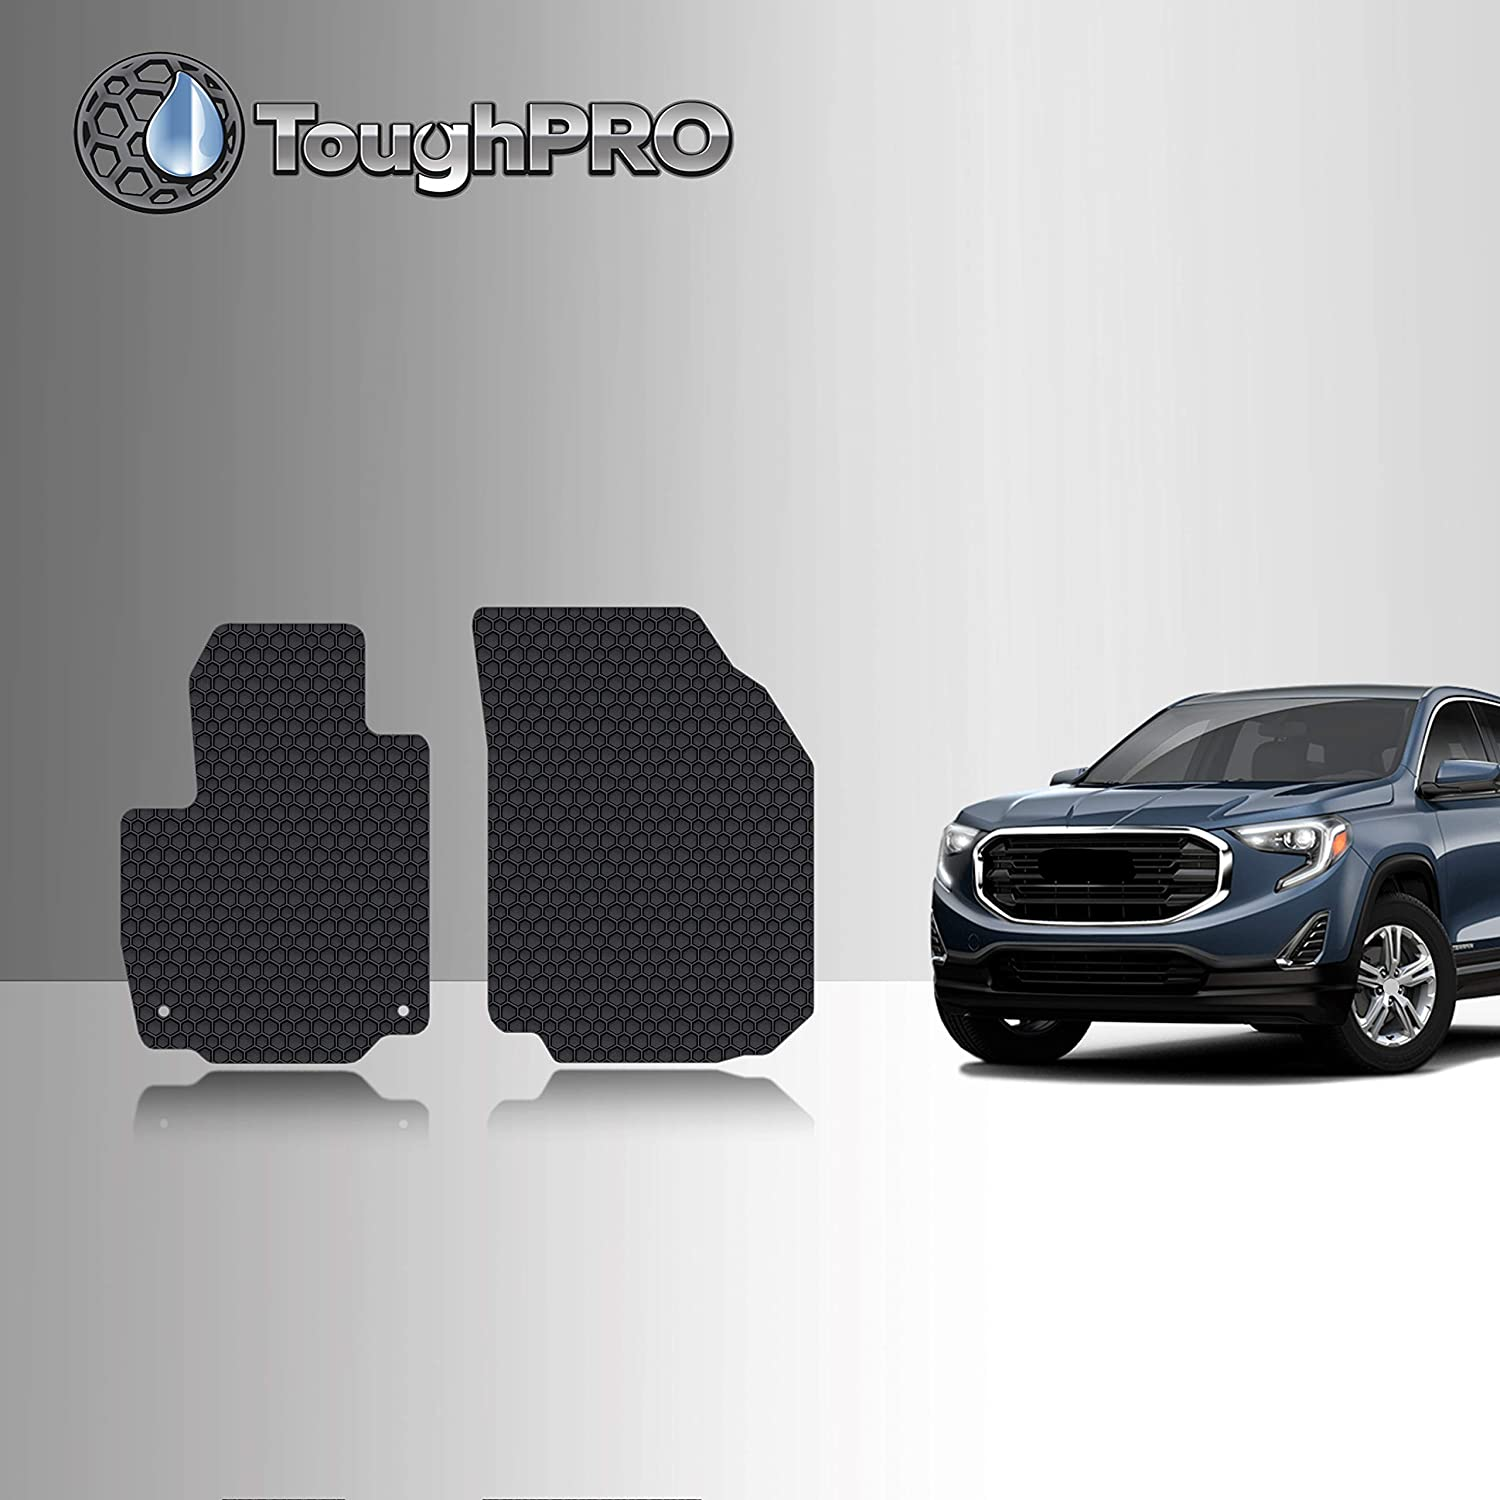 Toughpro Floor Mat Accessories Front Row Set Compatible With Gmc Terrain All Weather Heavy Duty Made In Usa 2021 Walmart Com Walmart Com